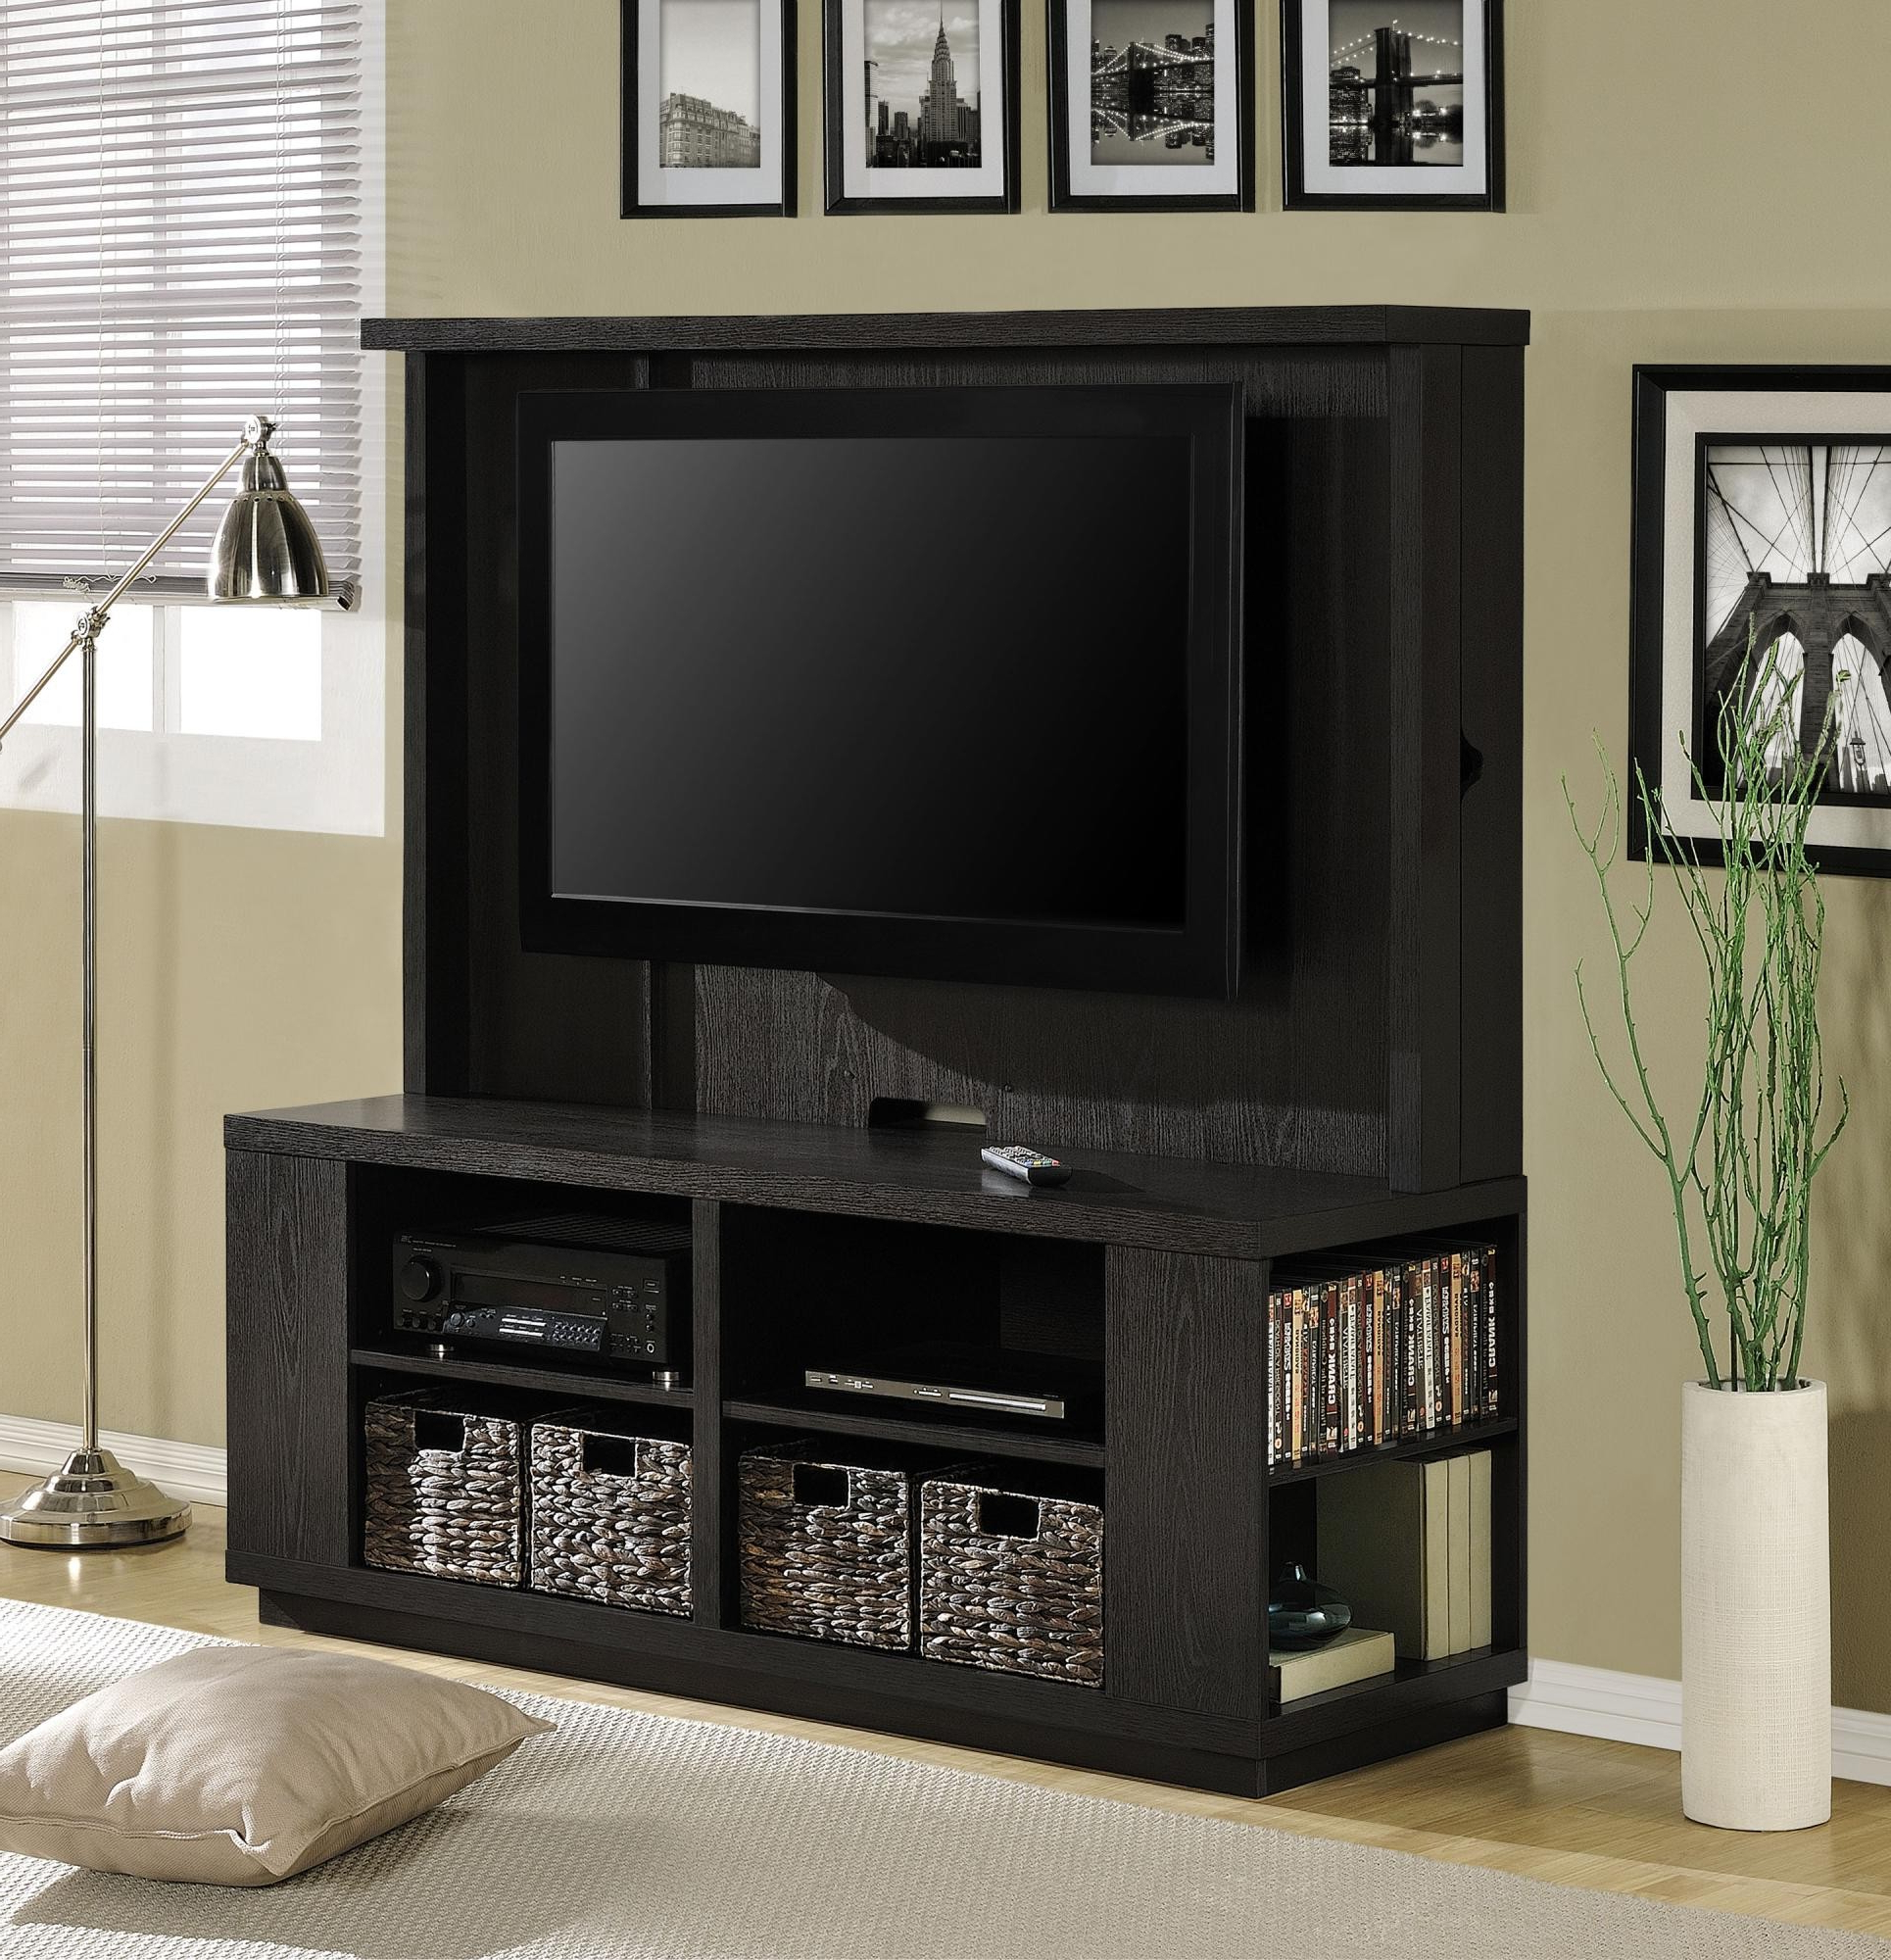 Small Black Wall Mounted Tv Stand With Storage Shelves Plus Woven Intended For Most Recently Released Tv Stands With Storage Baskets (Gallery 2 of 20)